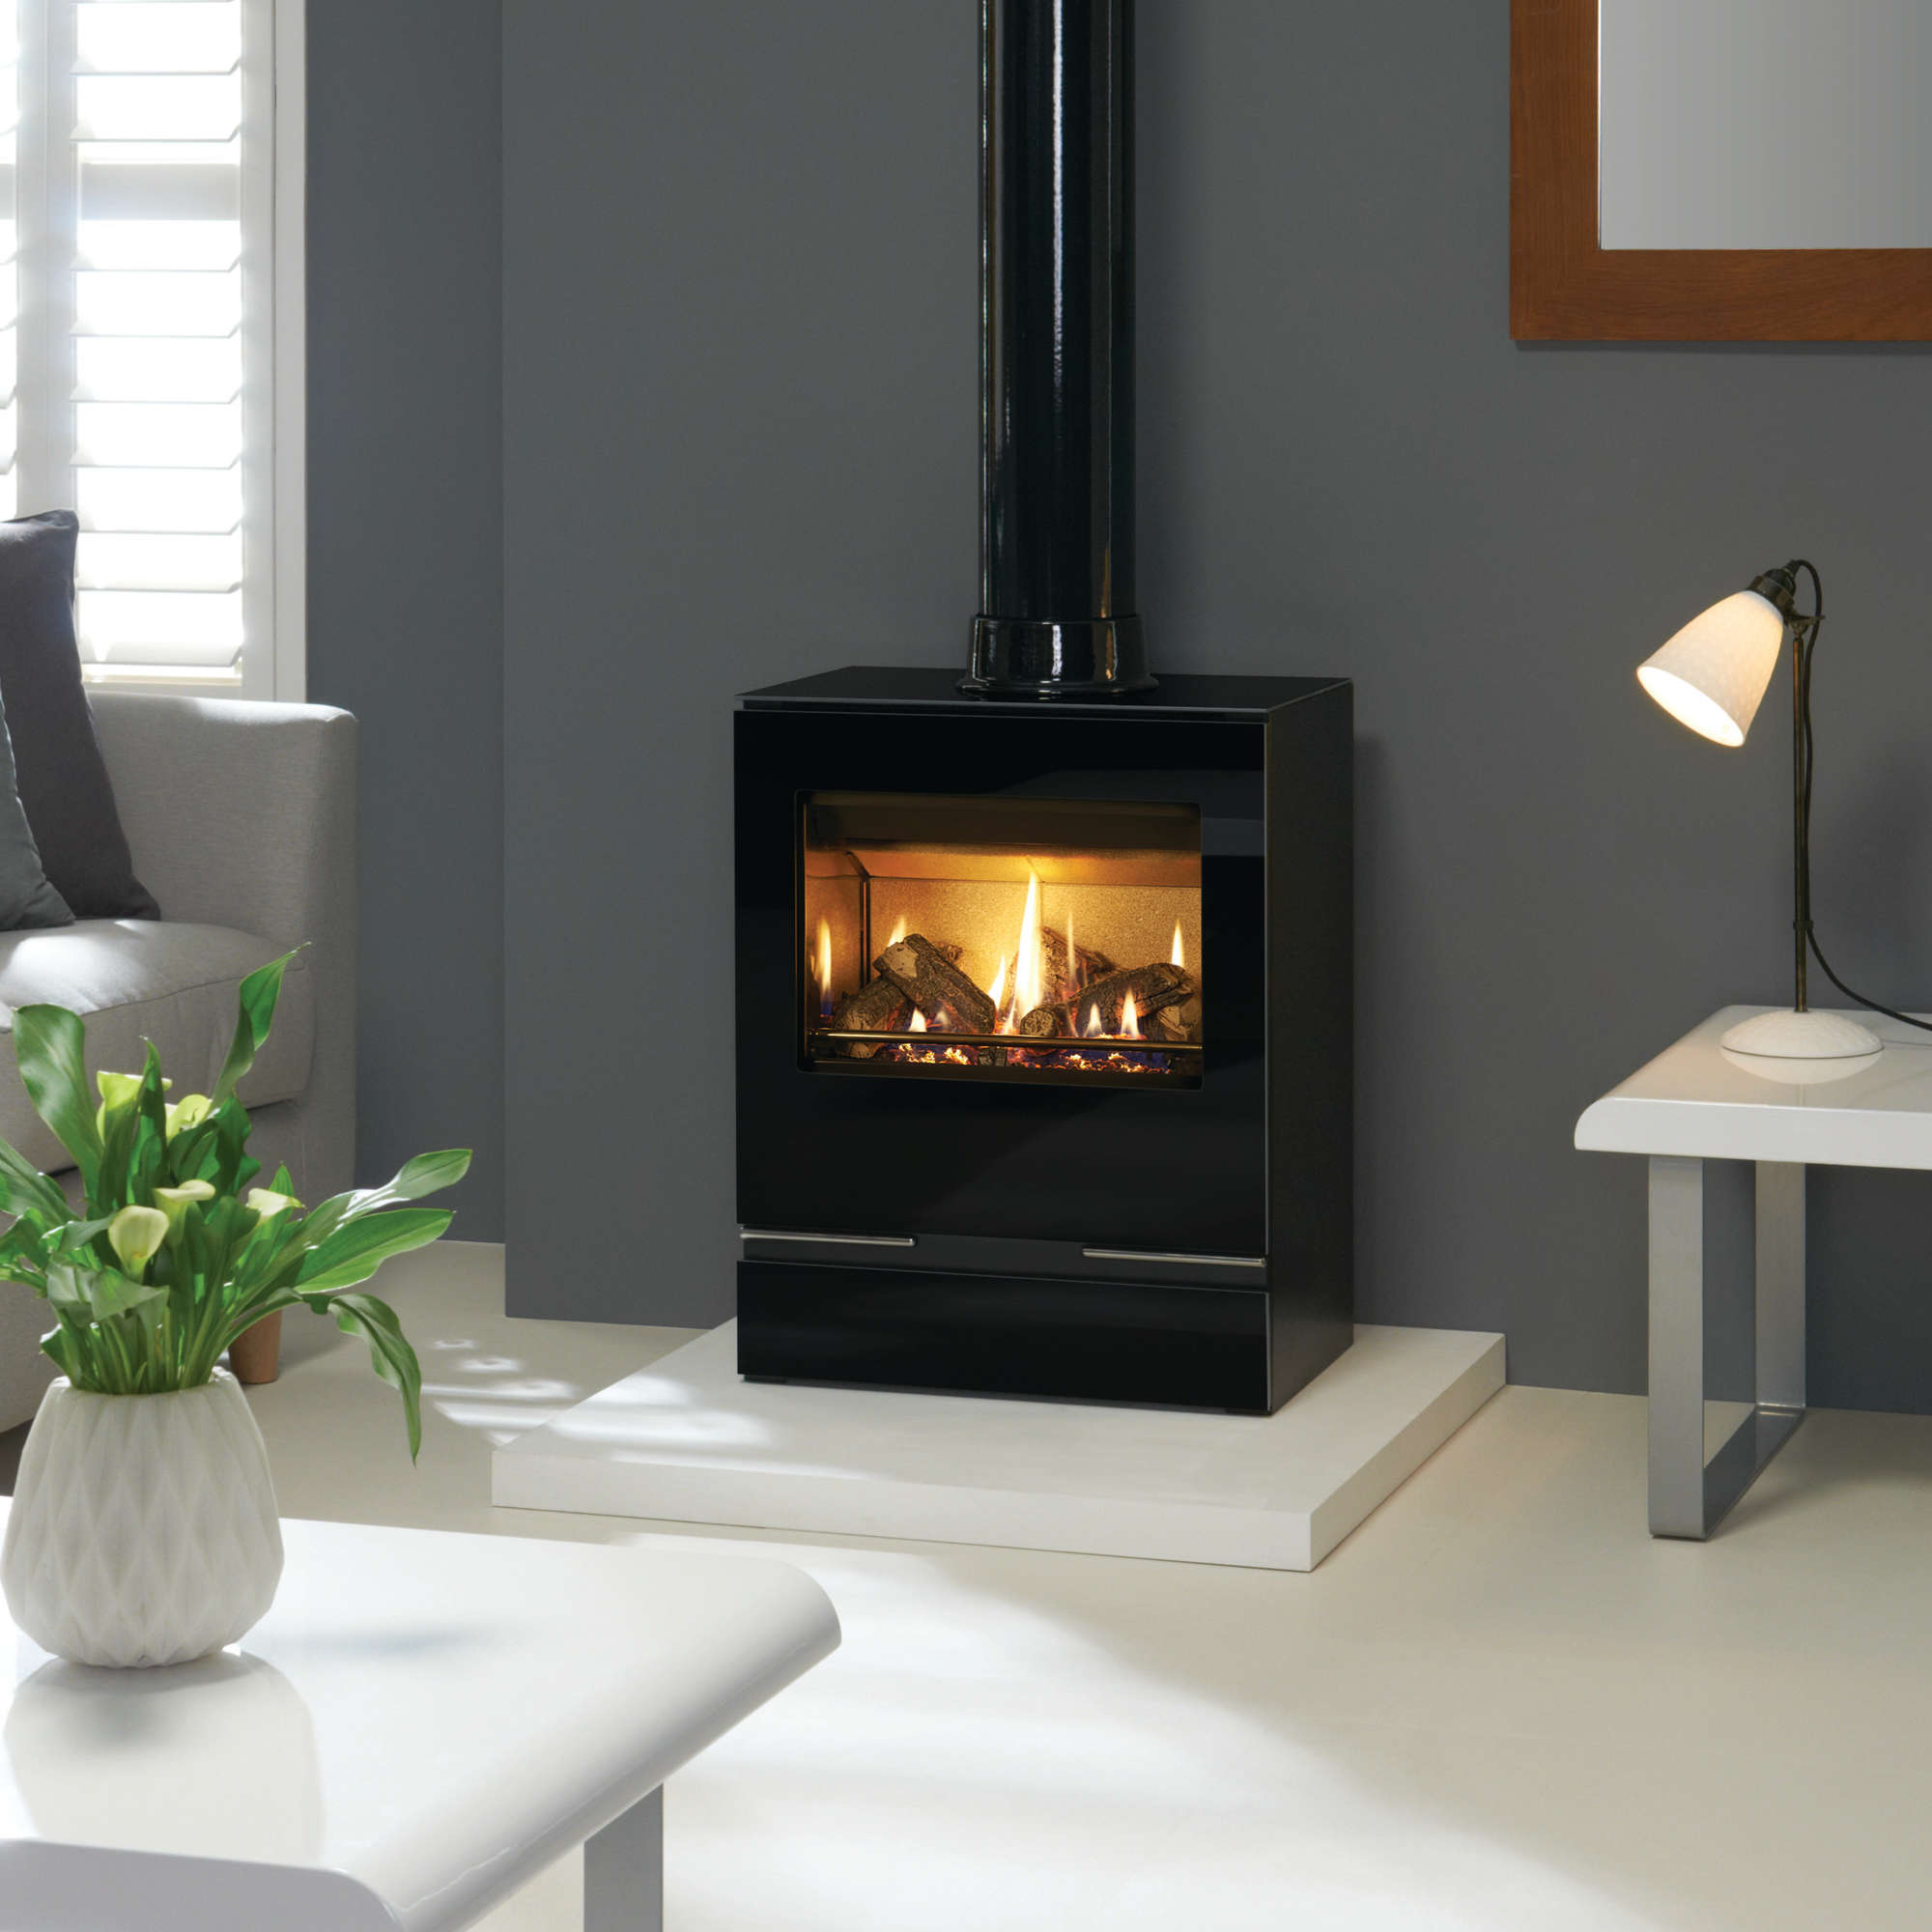 An image of Gazco Vision Medium Gas Stove - Conventional Flue - Natural Gas - Manual Control